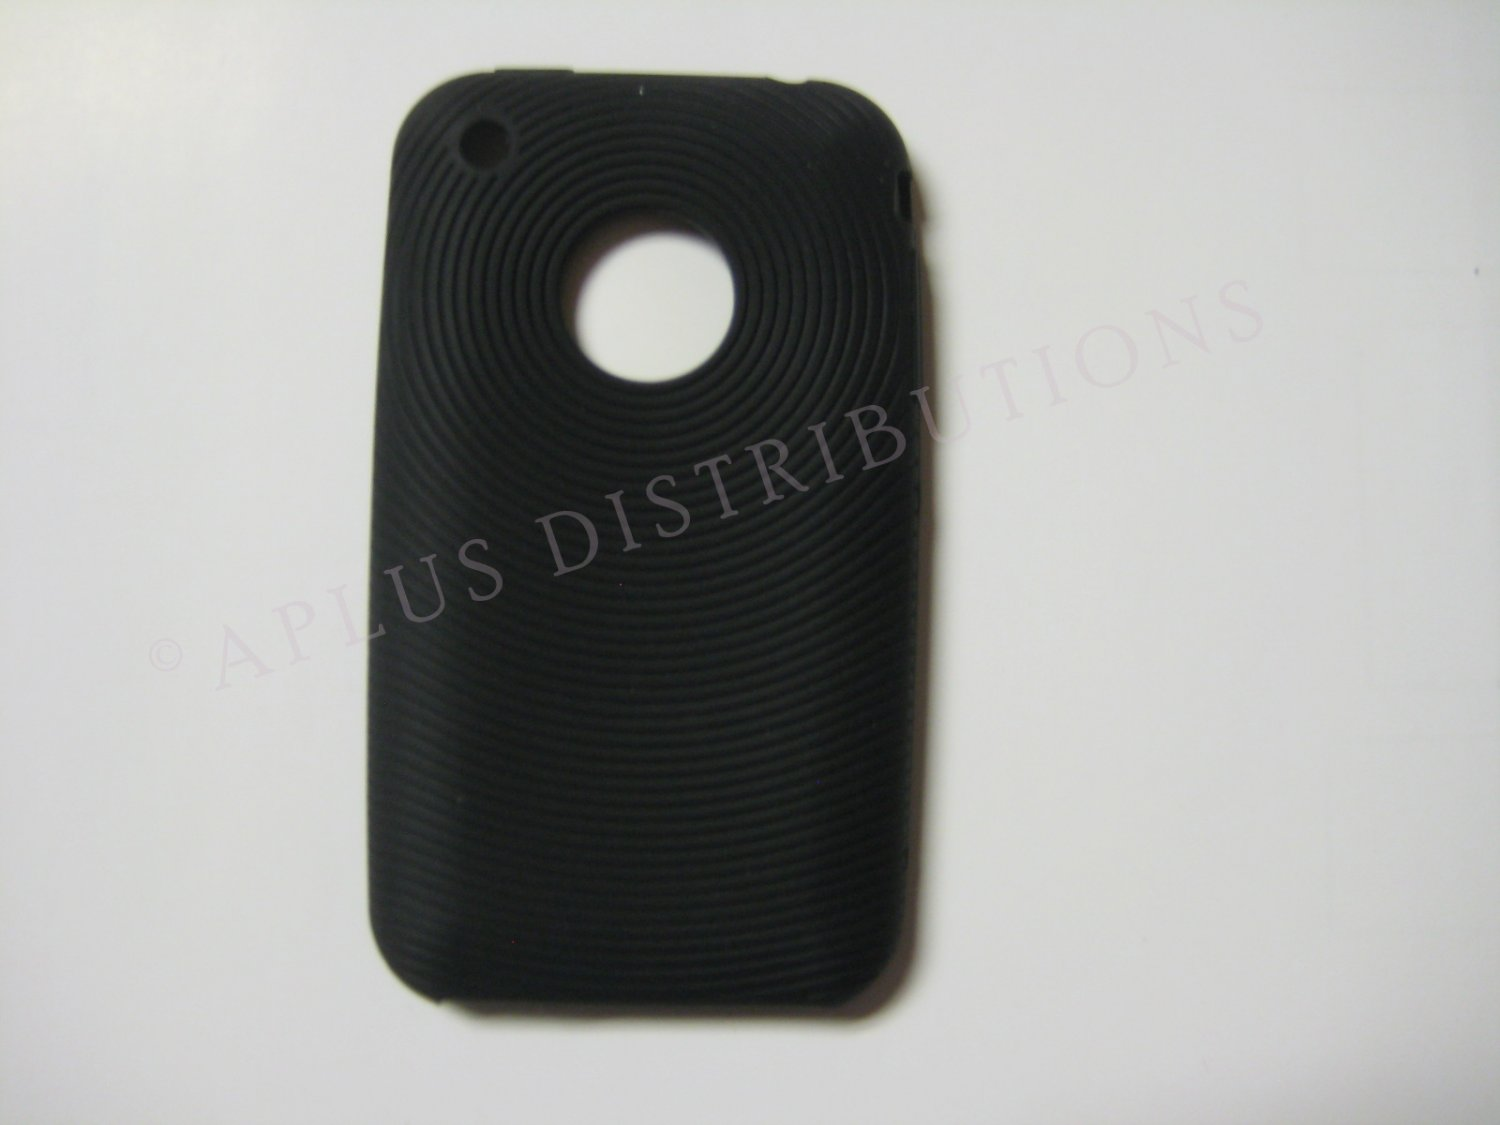 New Black Thumb Print Pattern Silicone Cover For iPhone 3G 3GS - (0004)